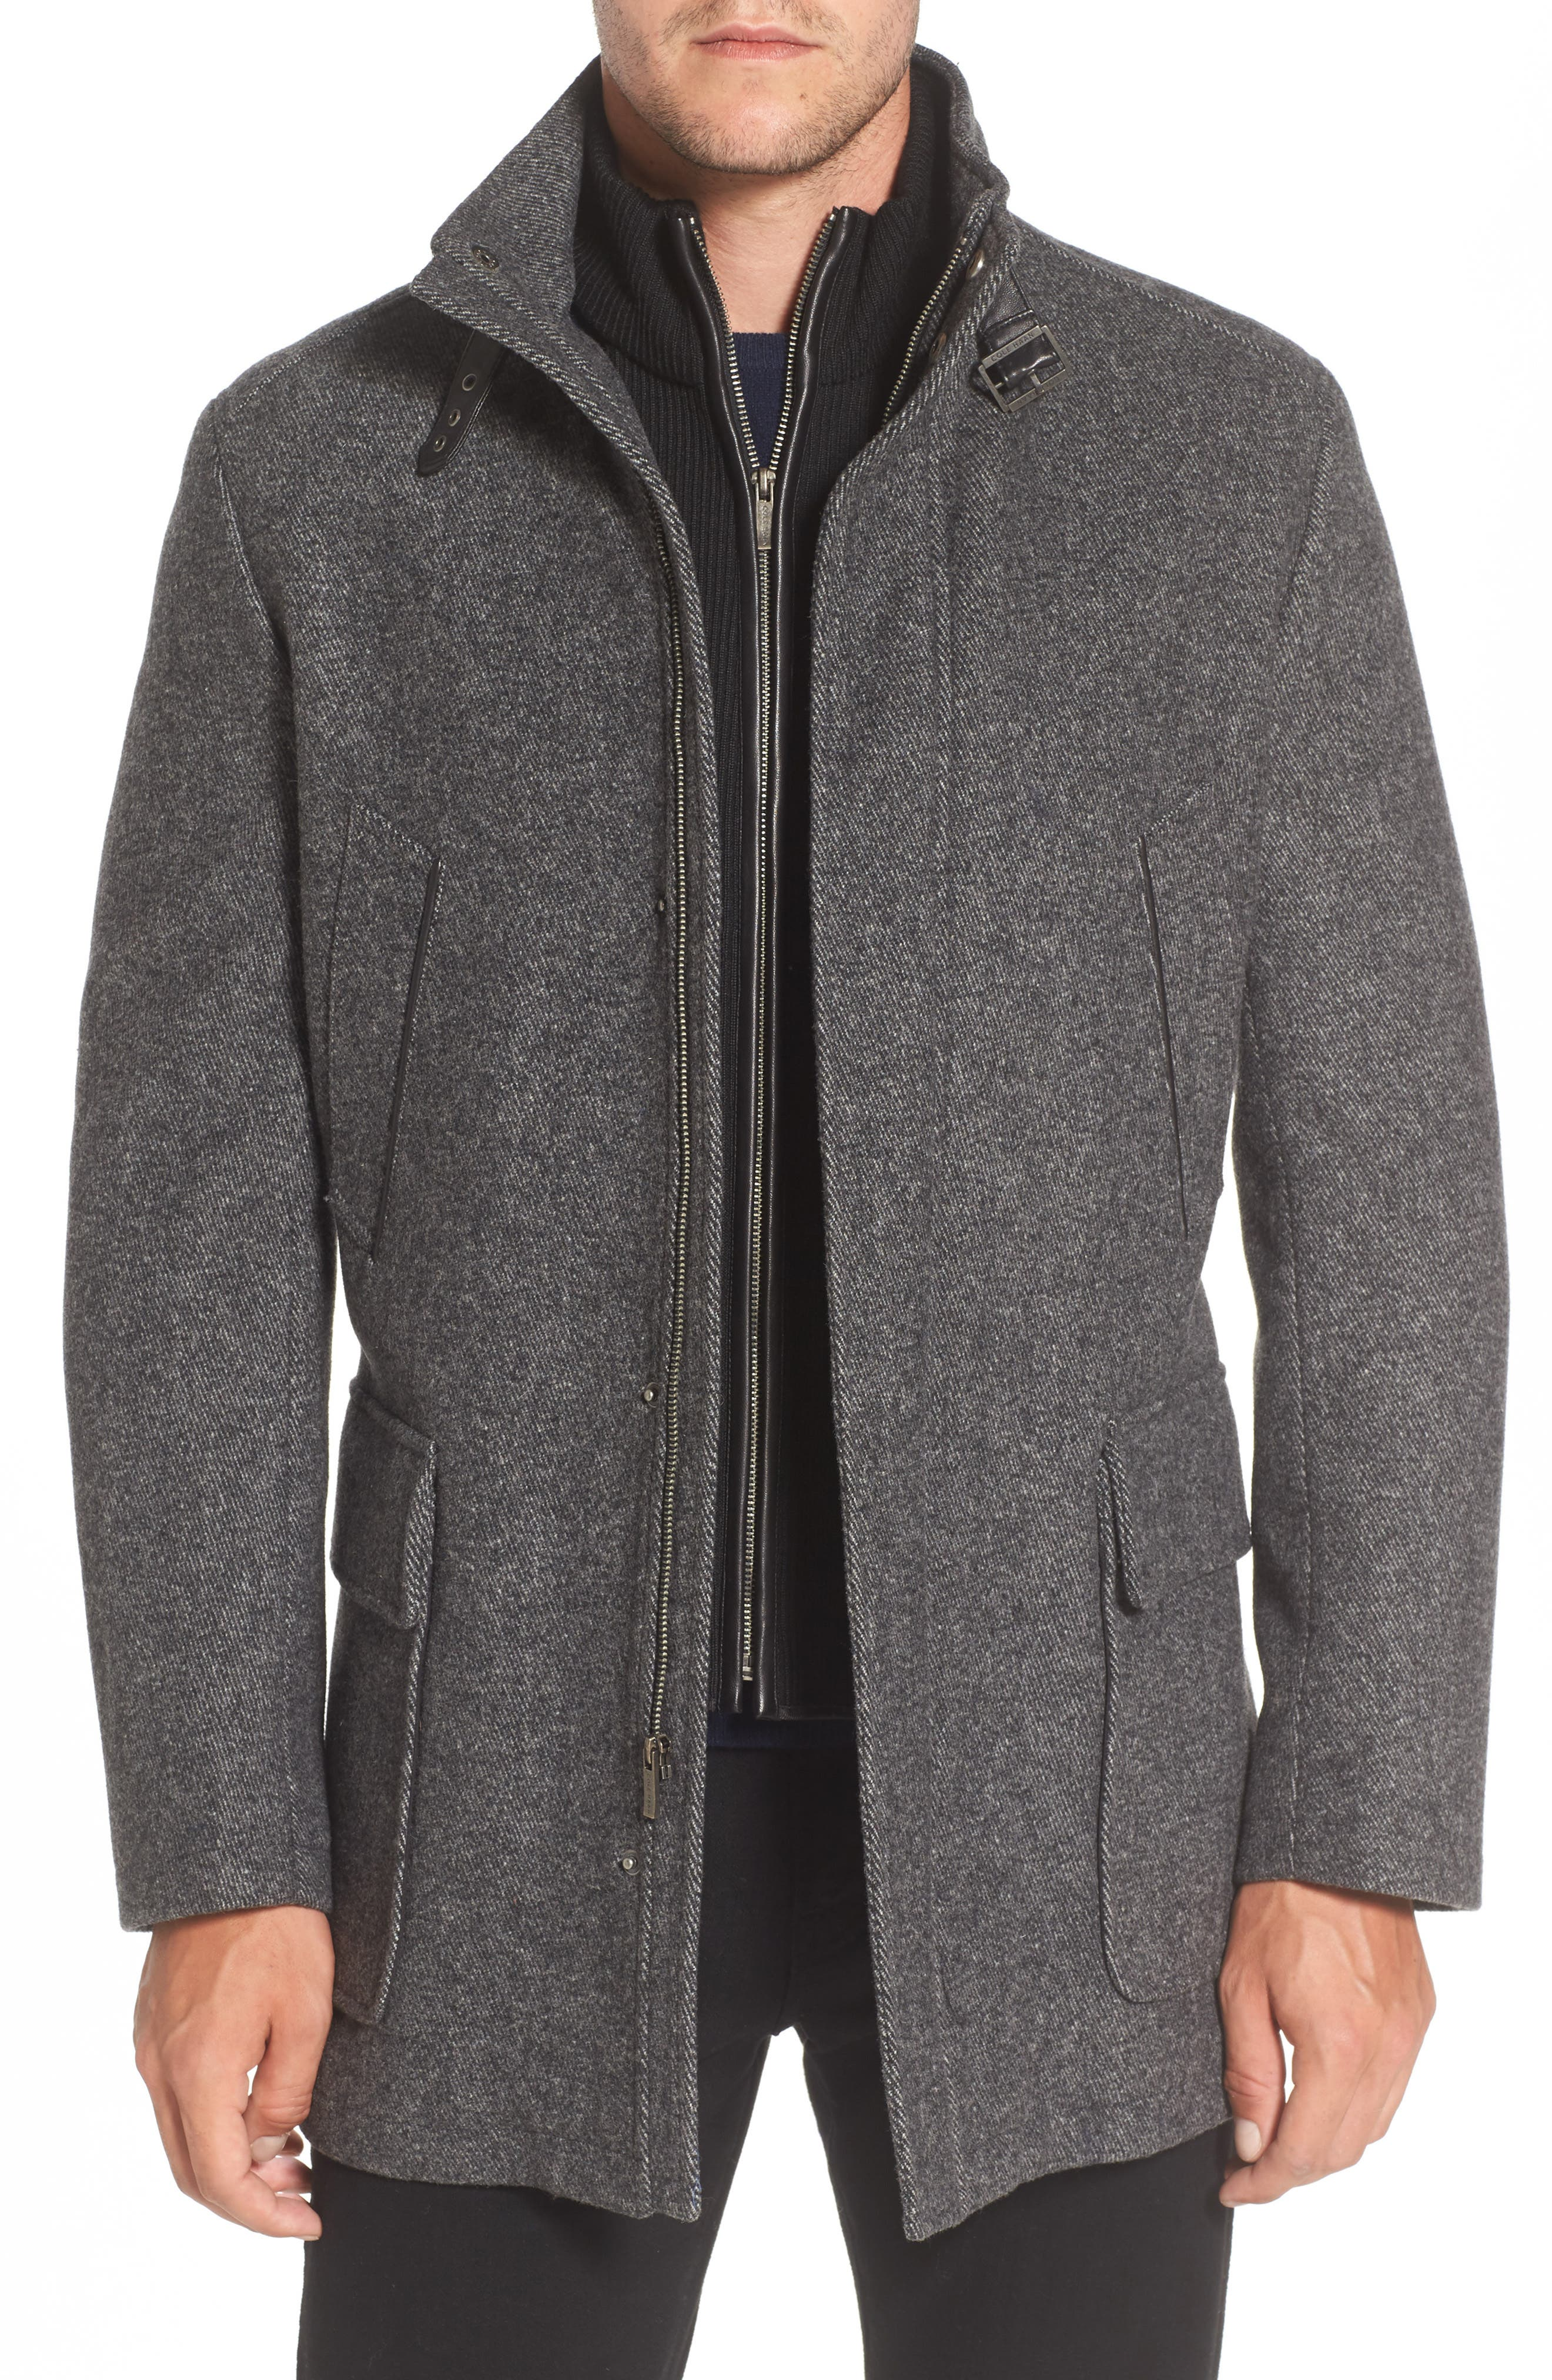 Alternate Image 1 Selected - Cole Haan Wool Blend Car Coat with Removable Knit Bib